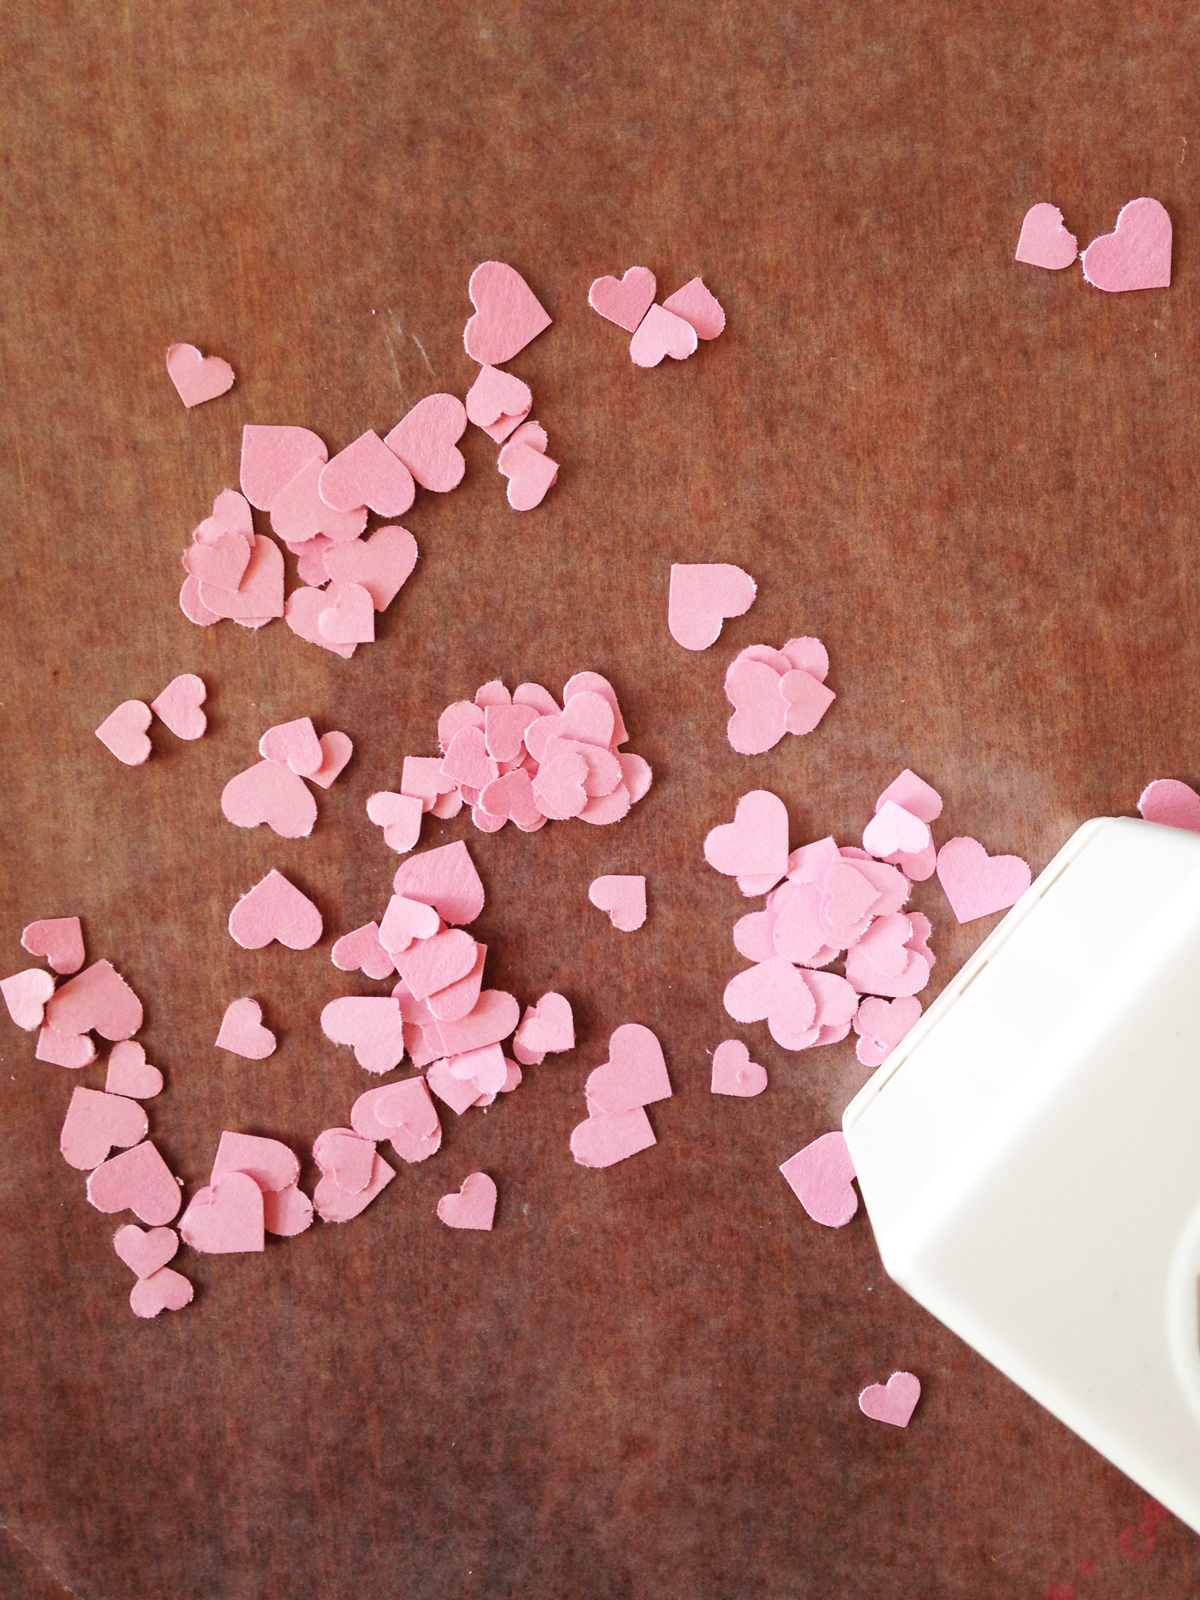 diy heartvalentines day wrapping paper - Valentines Day Wrapping Paper